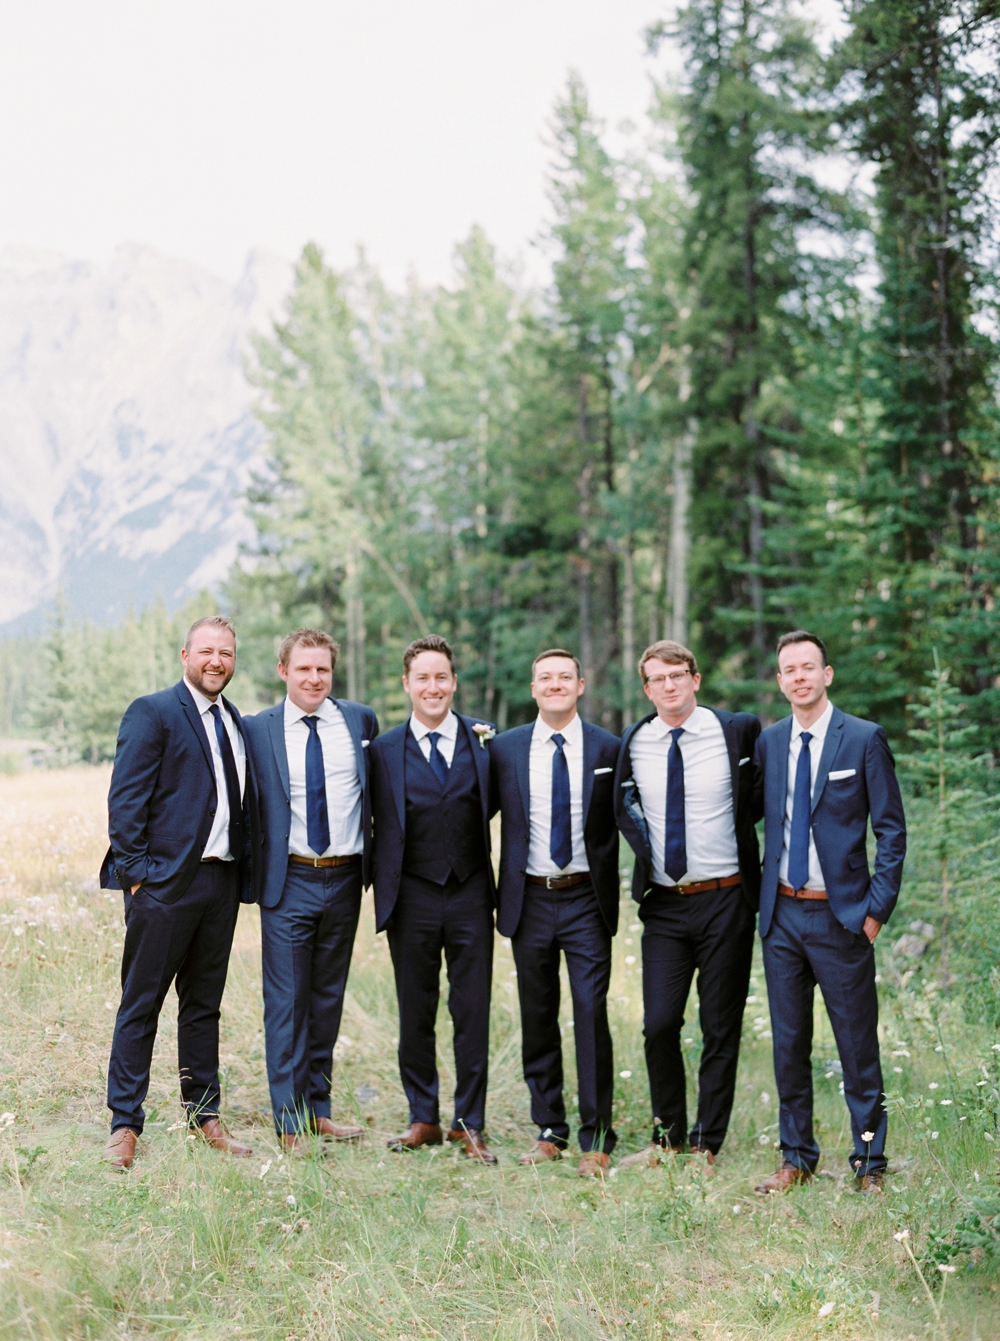 groomsmen | Banff springs wedding photographers | fairmont banff rocky mountain wedding | Justine Milton fine art film Photography